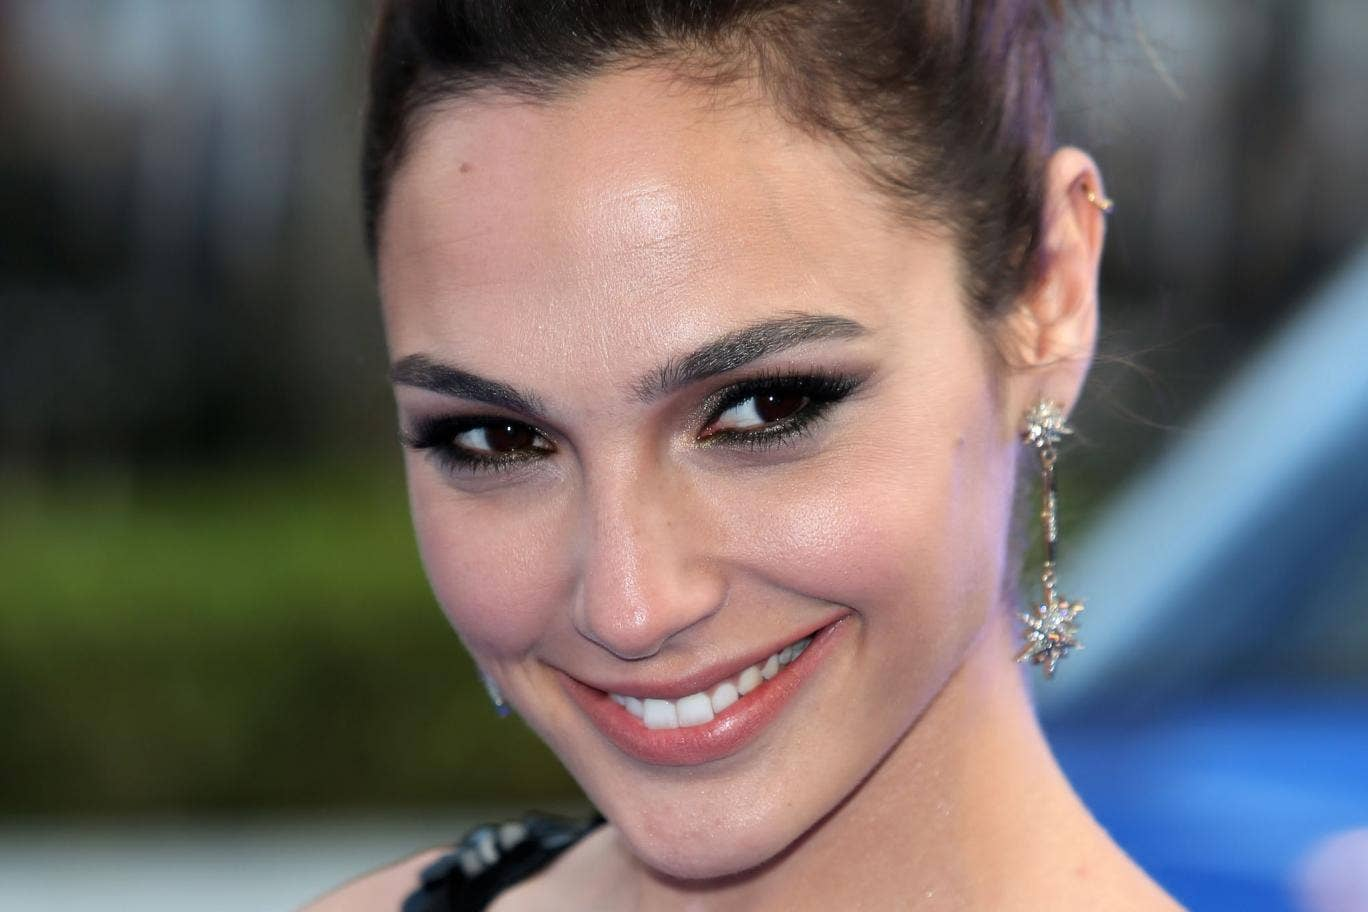 Israeli-born actress Gal Gadot has been cast to play Wonder Woman